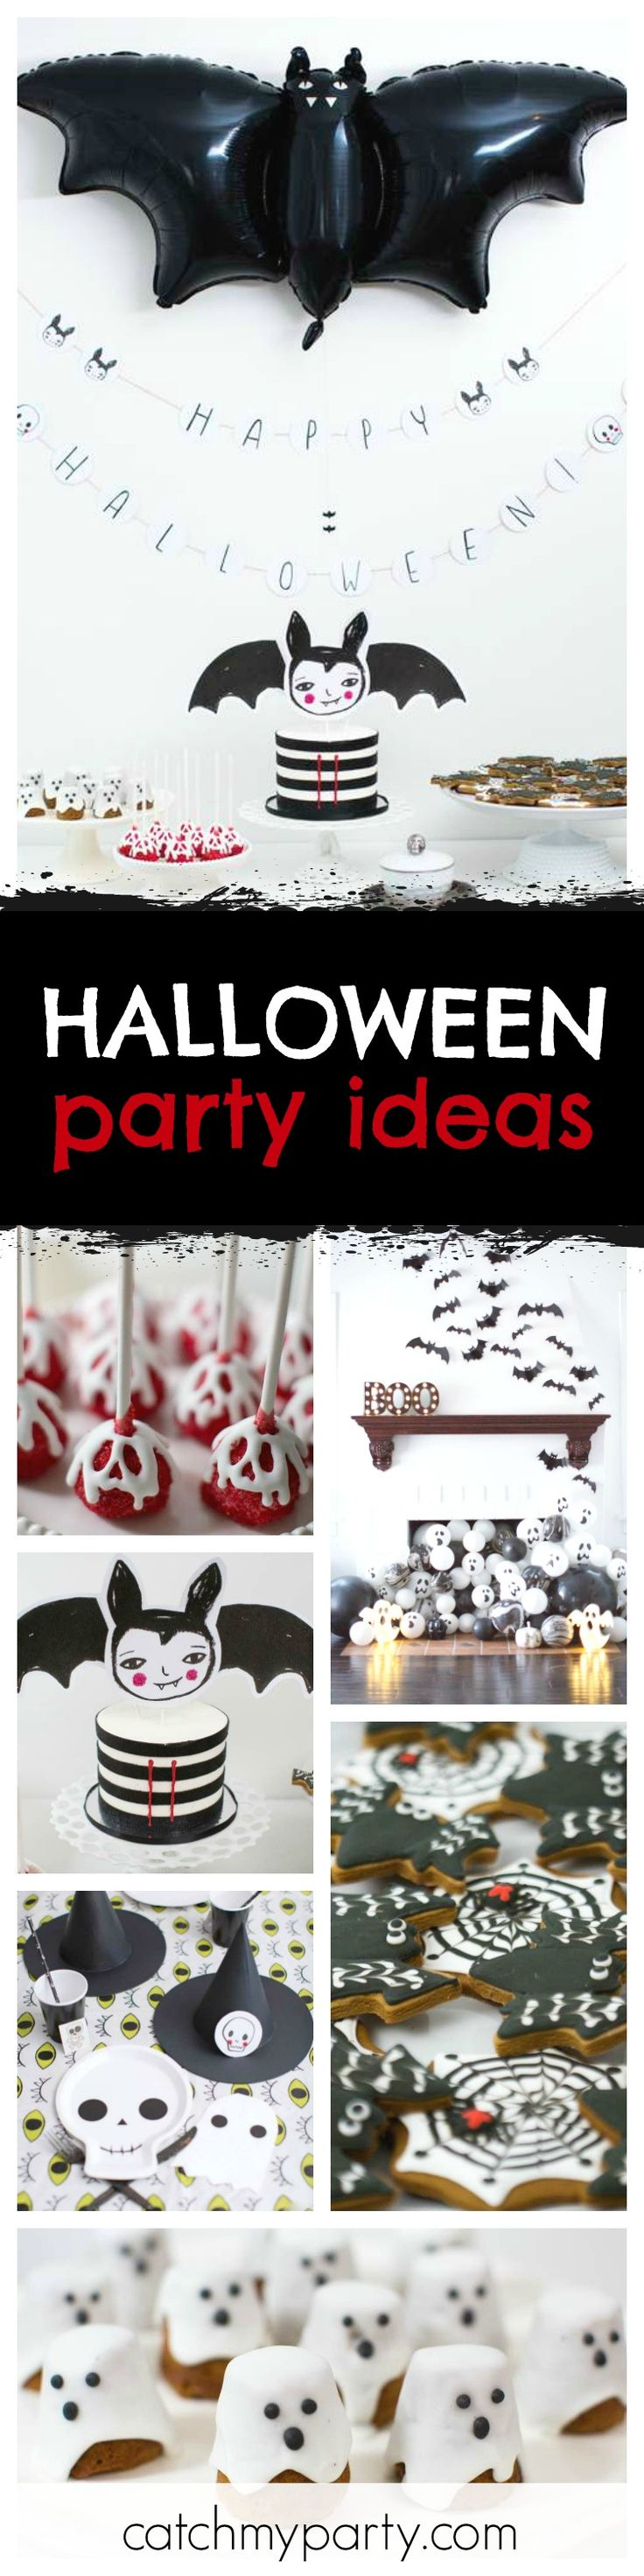 Wow absolutely love this halloween party the balloon decorations are awesome and the cake